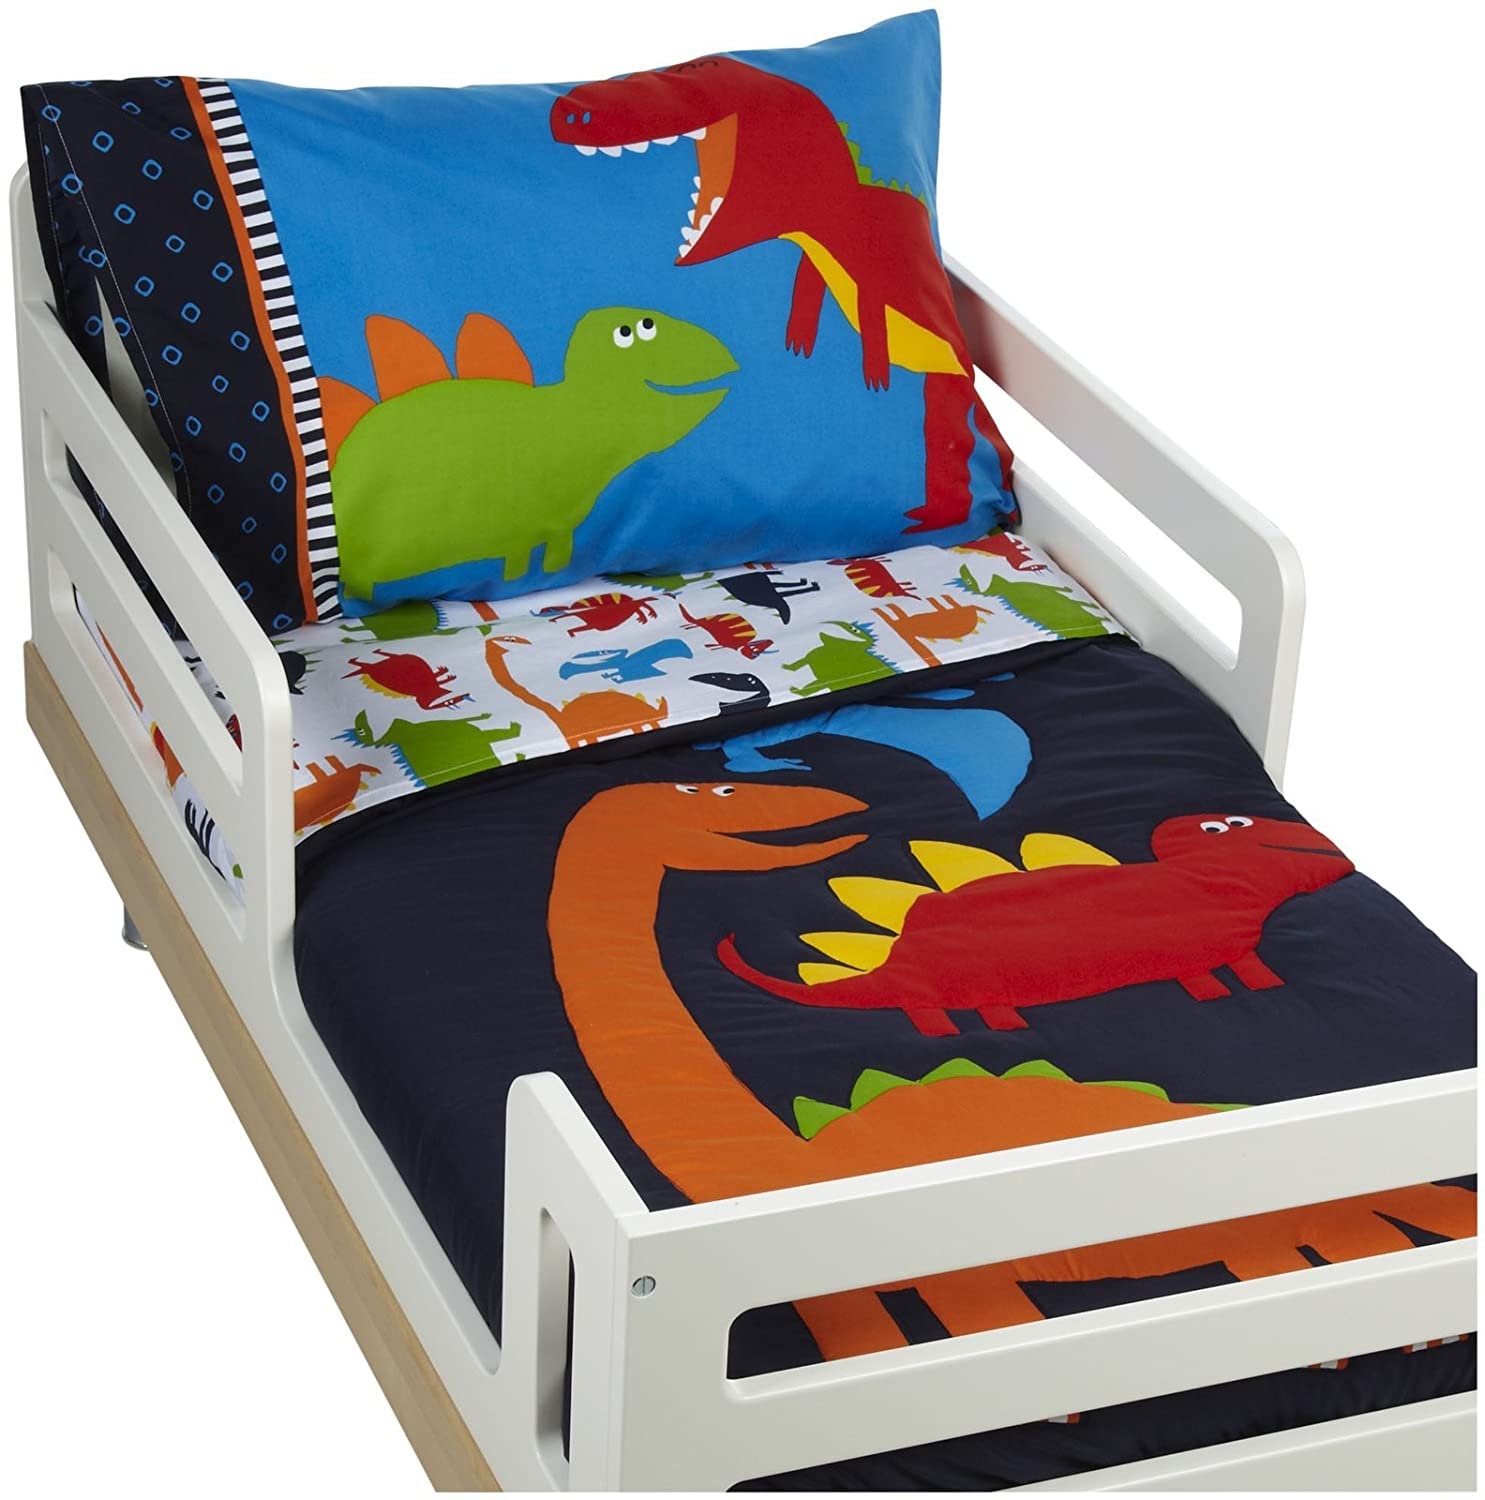 Carter's 4 Piece Toddler Bed Set, Prehistoric Pals Crown Crafts Infant Products 6354416